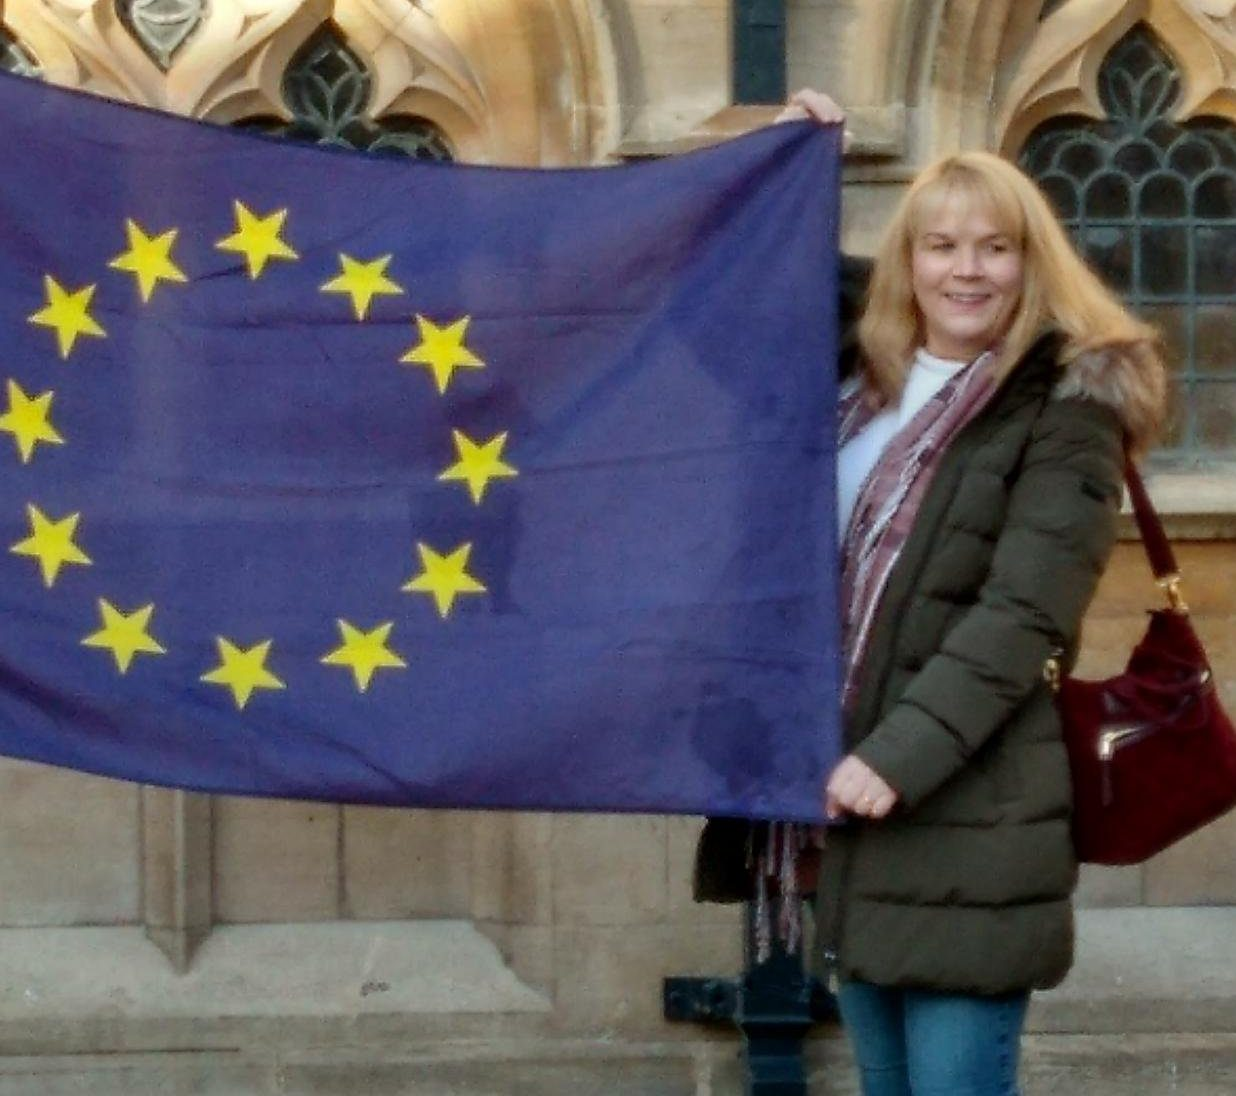 I have served the UK as a British Army wife for decades, but the treatment of EU nationals has changed my view of this country